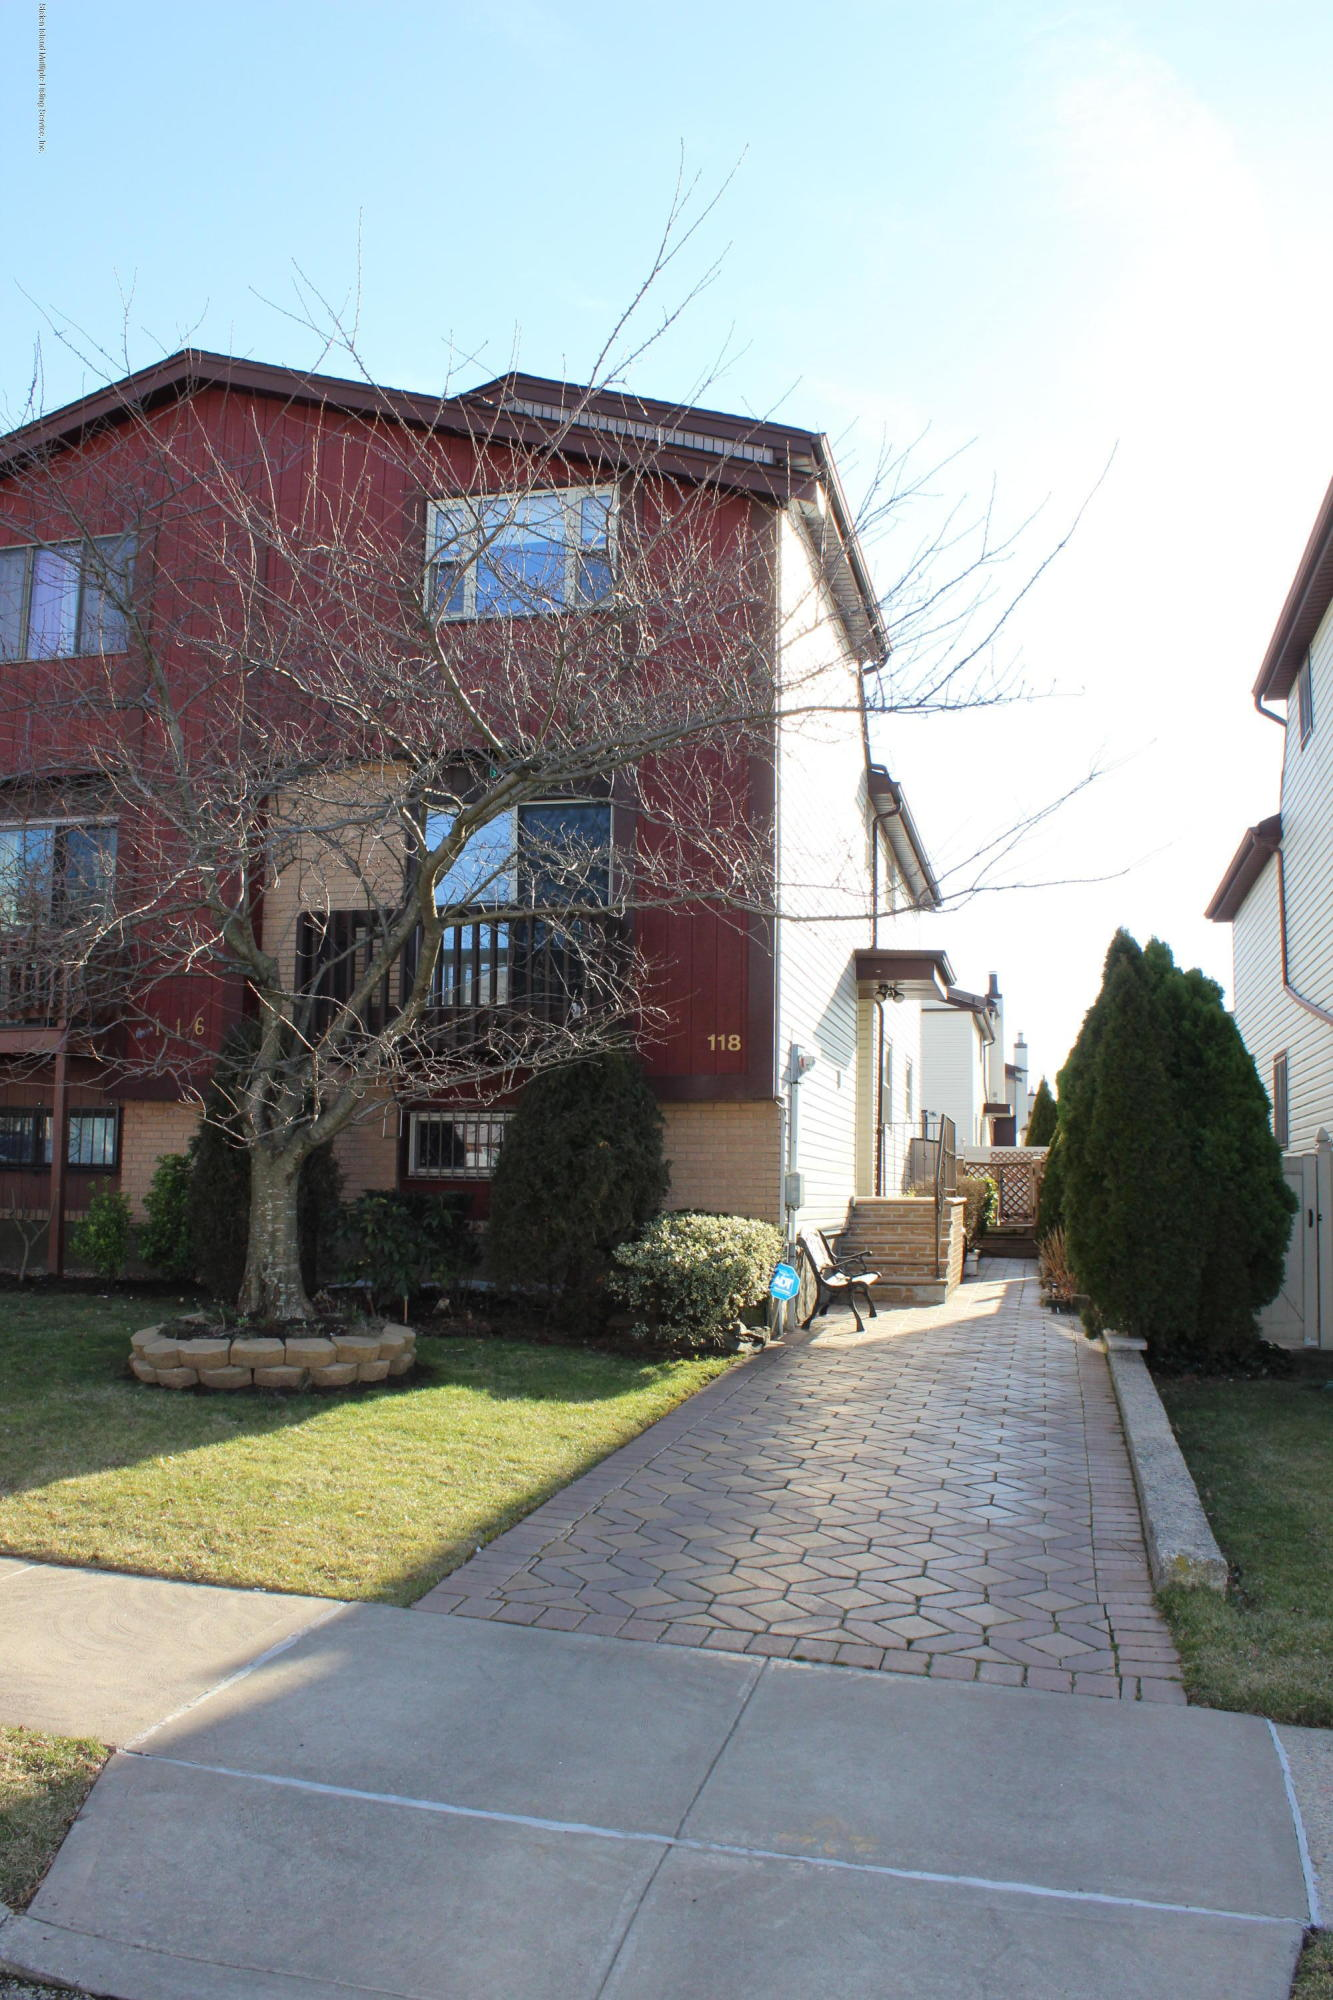 Single Family - Attached 118 Braisted Avenue  Staten Island, NY 10314, MLS-1135869-2